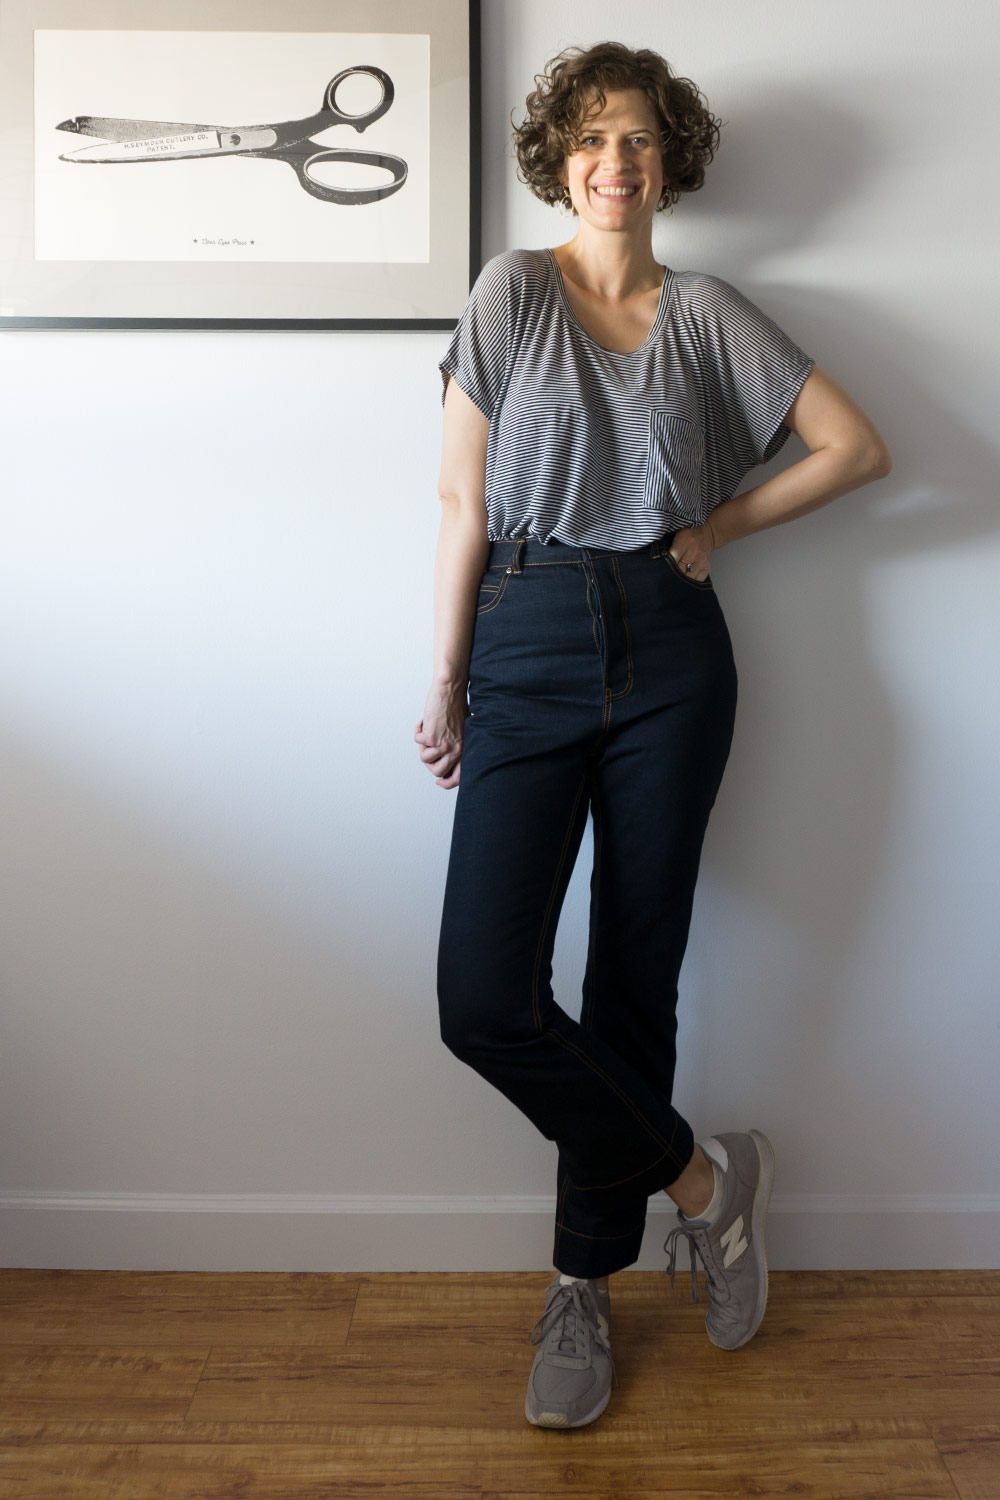 18SEWDIY-DawnJeans-Outfit-front2.jpgDIY High Rise Rigid Jeans - Megan Nielsen Dawn Jeans | Sew DIY